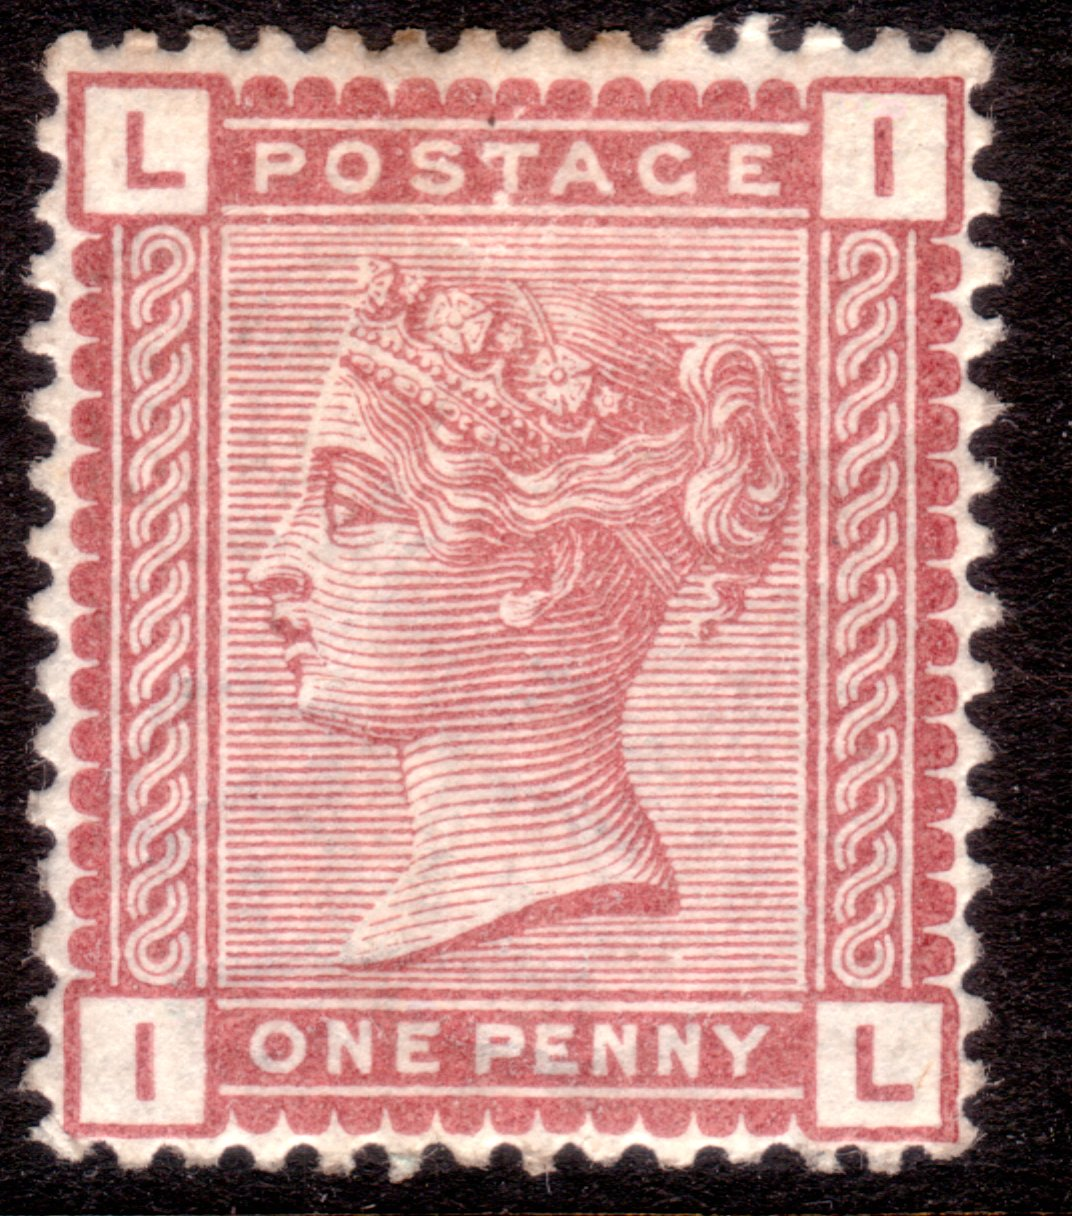 1880 1d Venetian Red Mint with Variety Dot Below 'T' of 'POSTAGE'